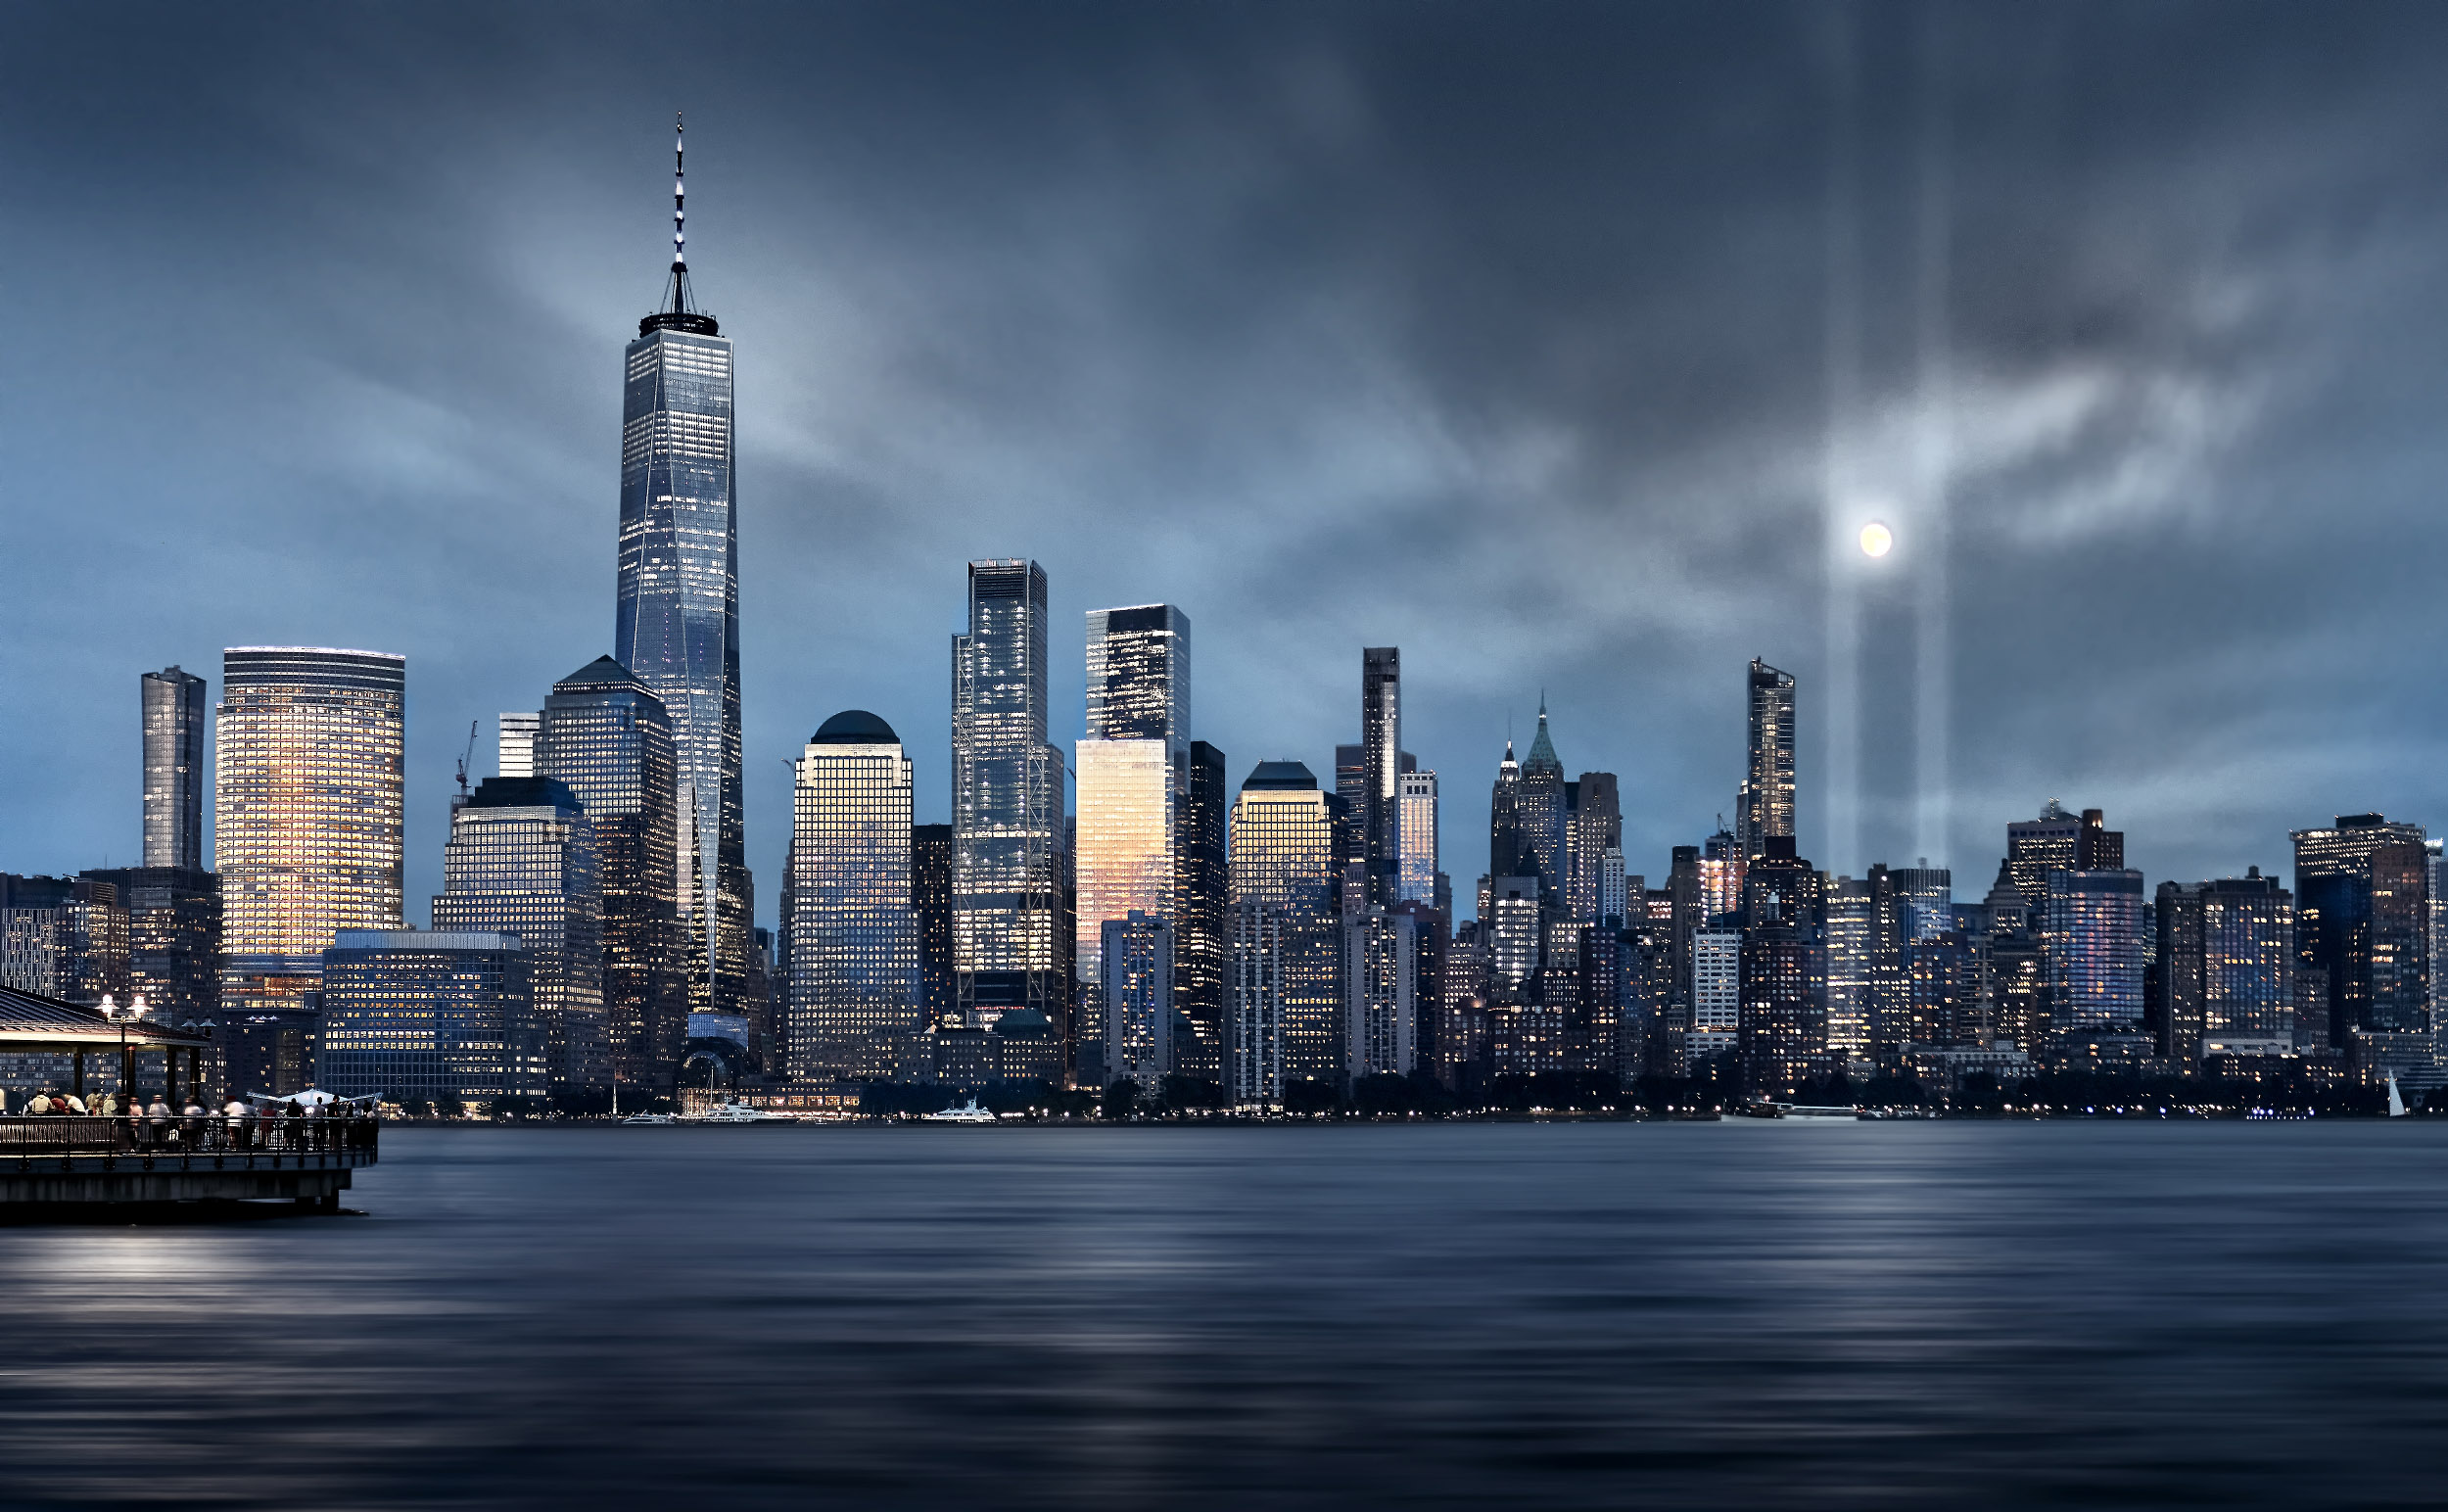 New York Blue. Photo by Carles Carreras.